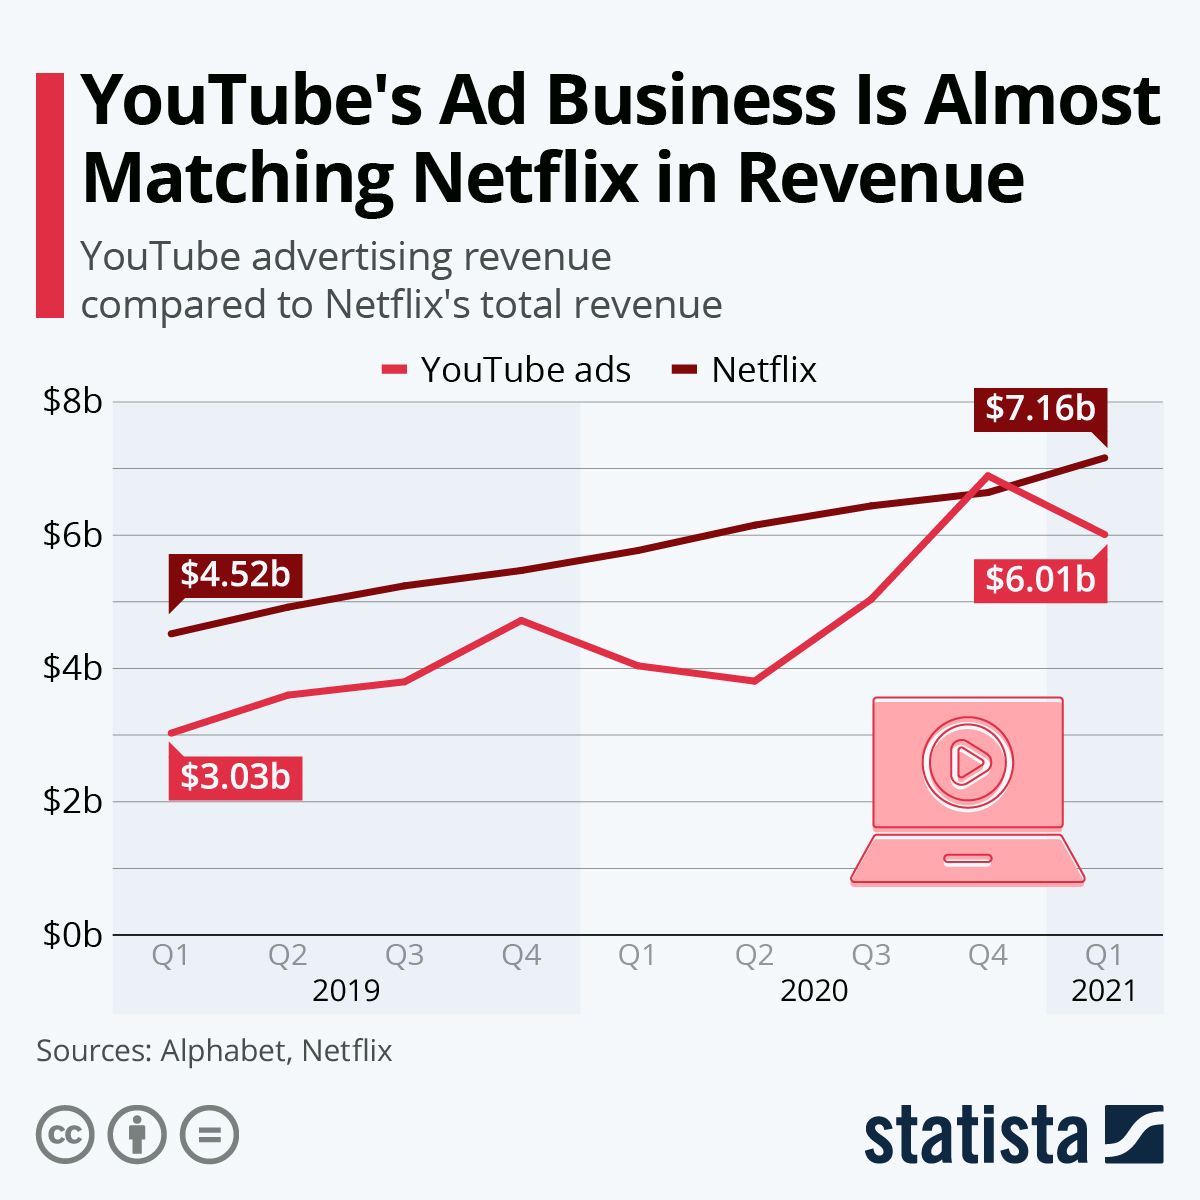 YouTube's revenue is almost on par with Netflix's